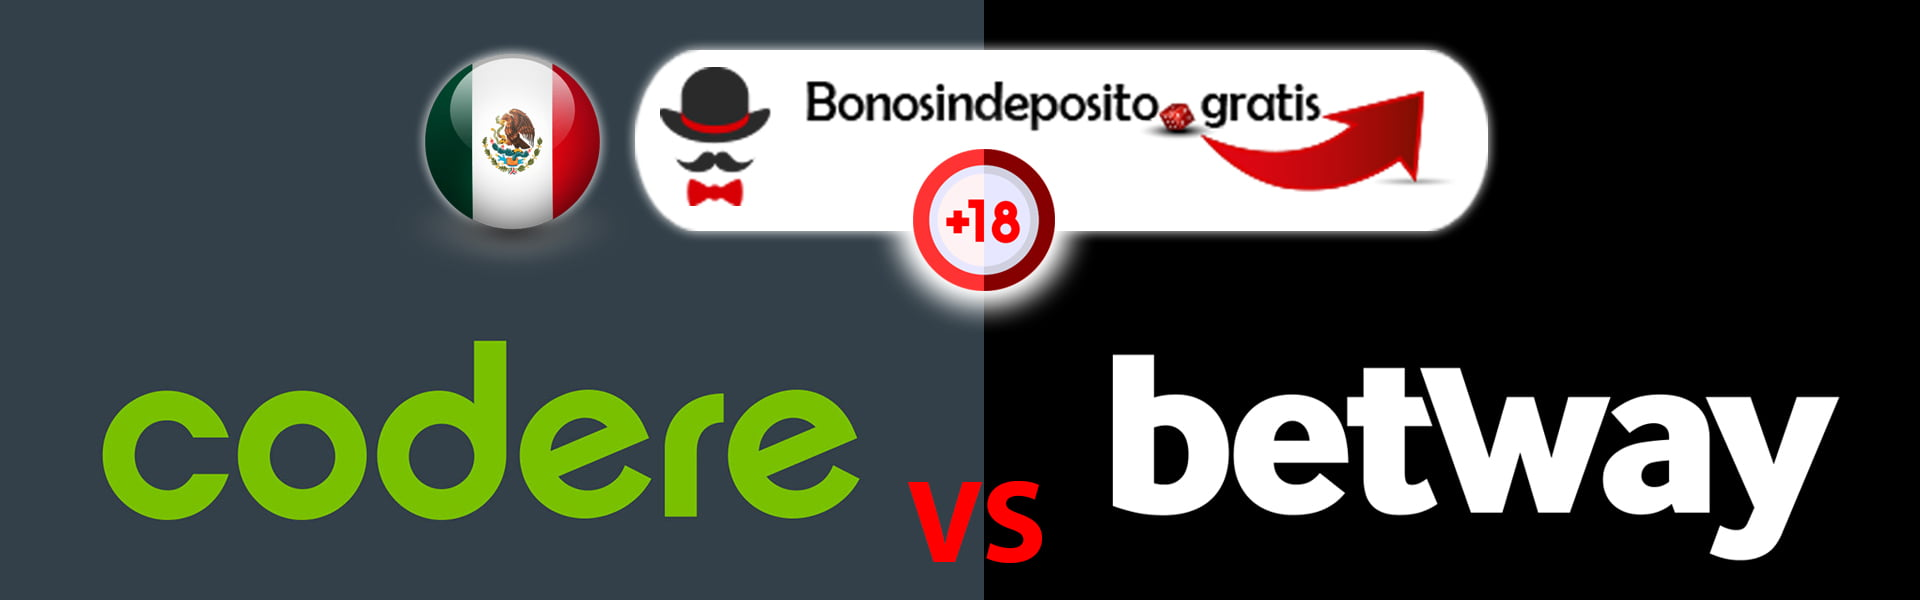 codere o betway, betway o codere, codere vs betway